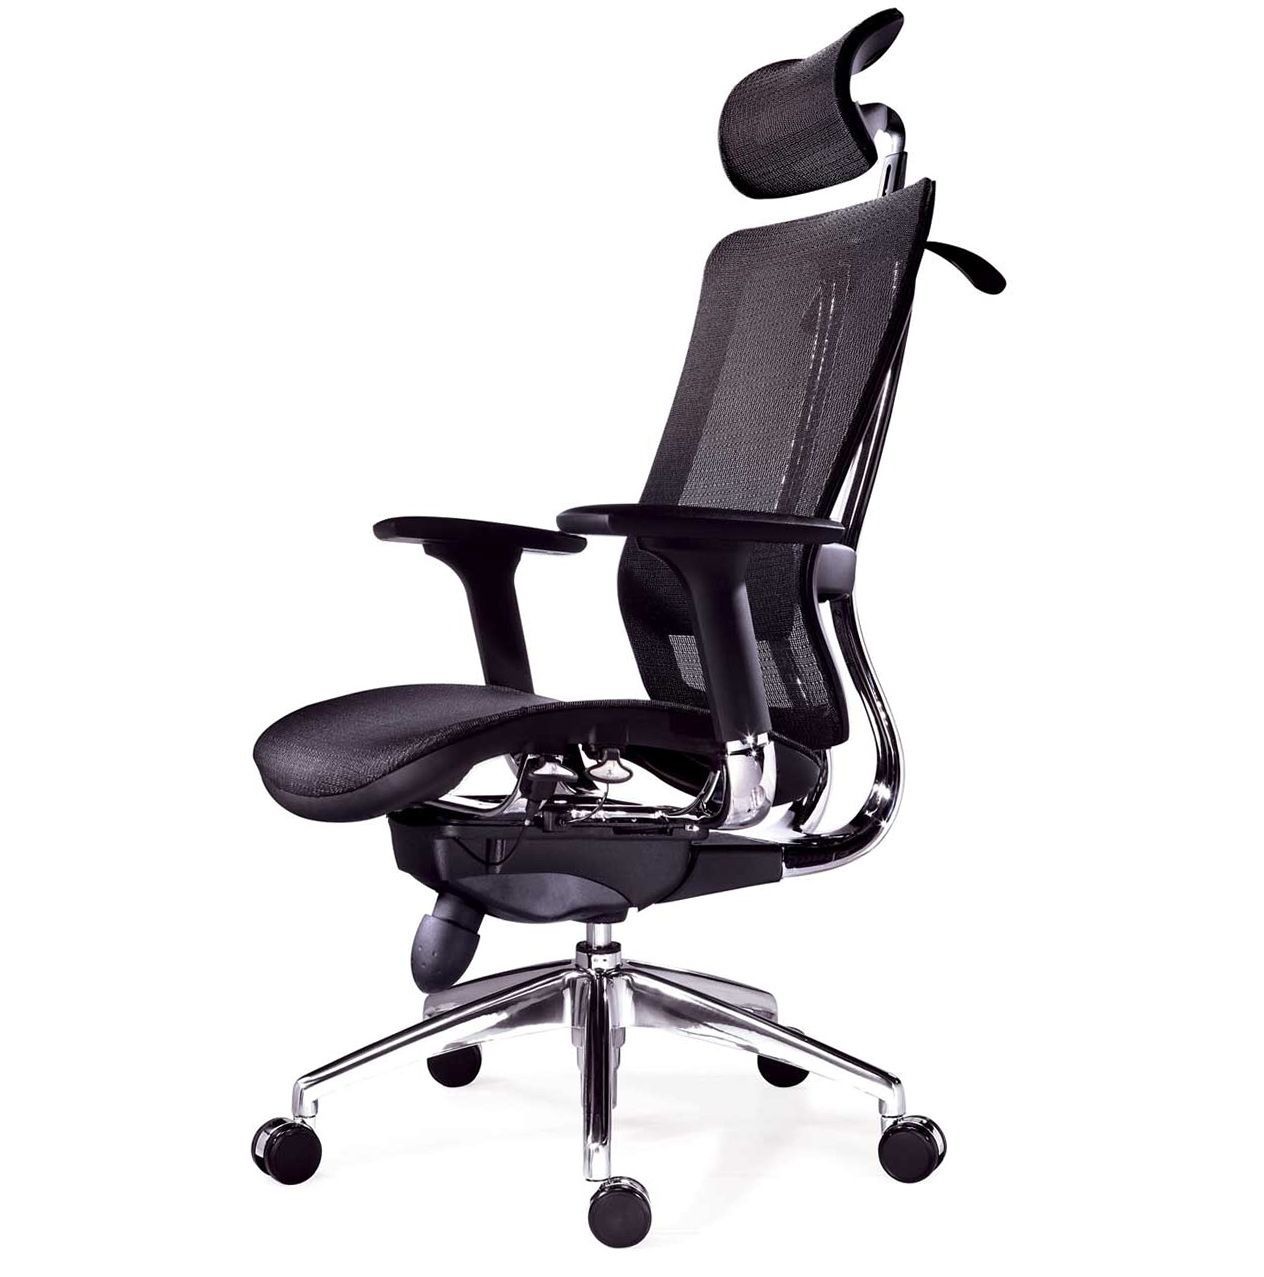 Best Office Chair For Back Pain Ashley Furniture Home Check More At Http